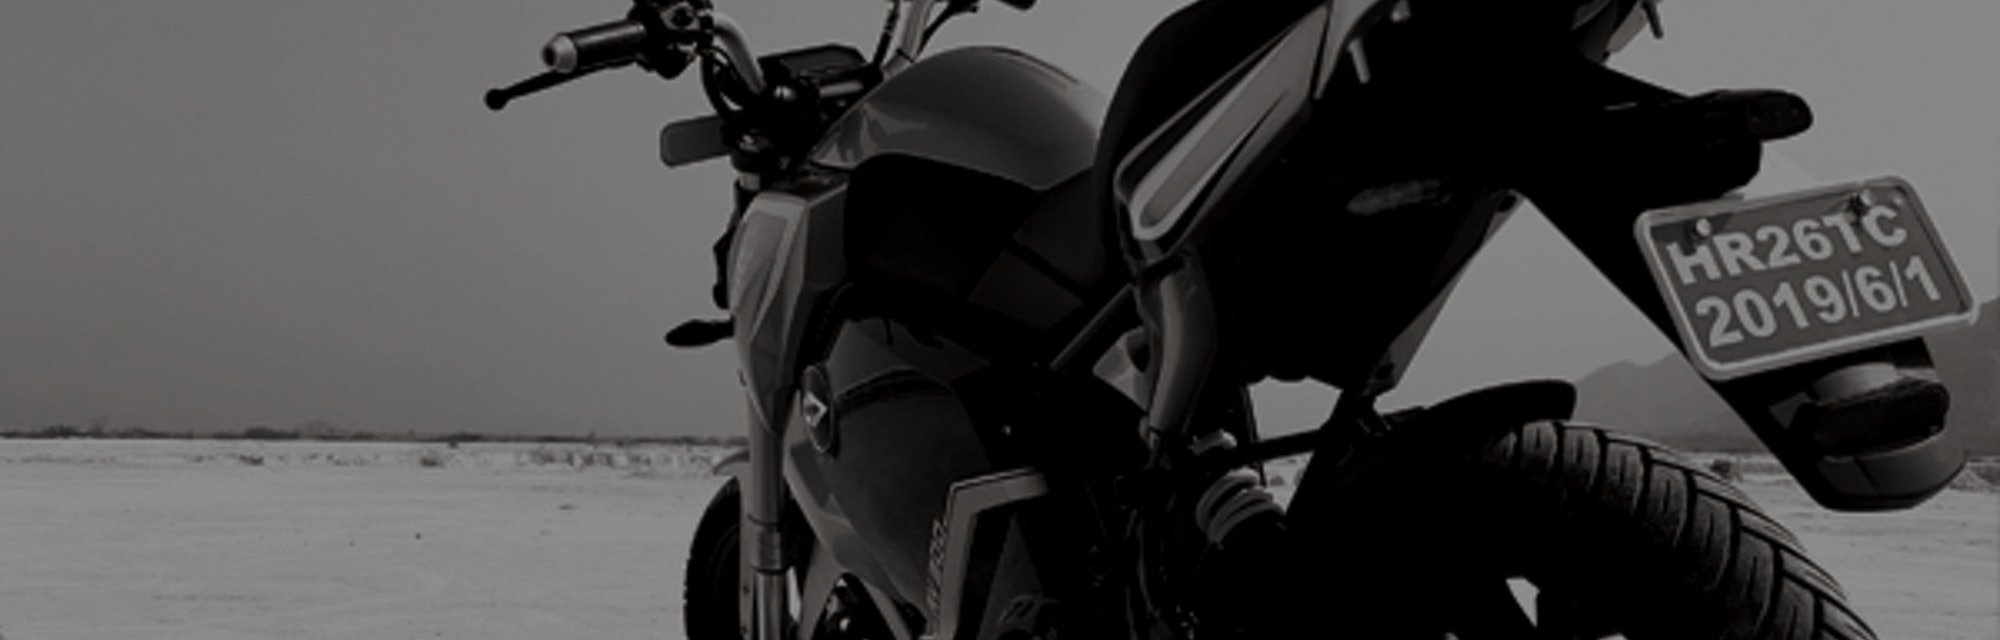 Revolt Motors, a India-based maker of electric motorcycles, plans to release a more affordable bike ...